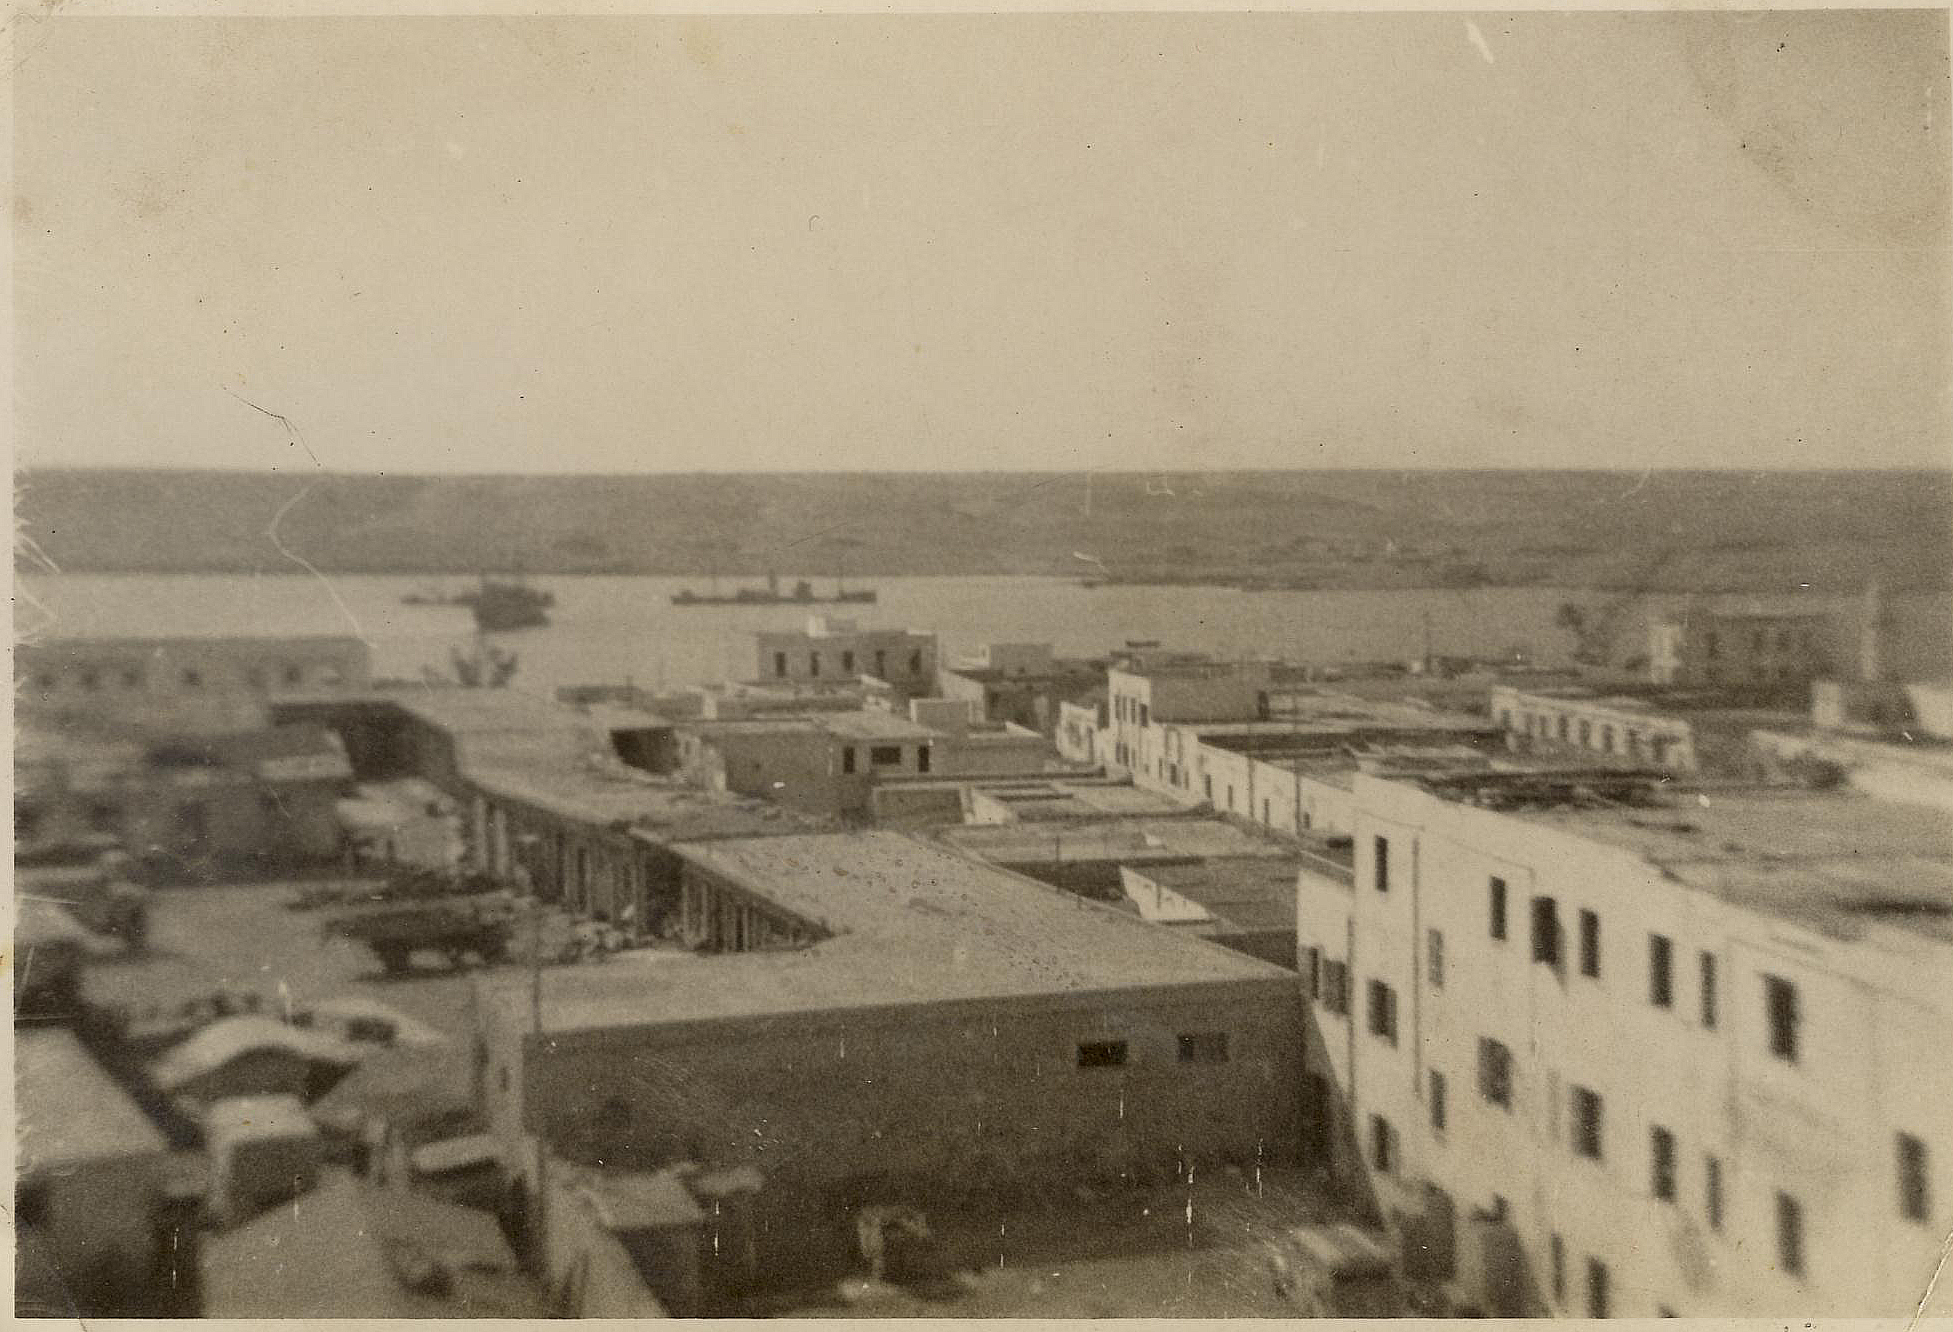 Tobruk, January 1942